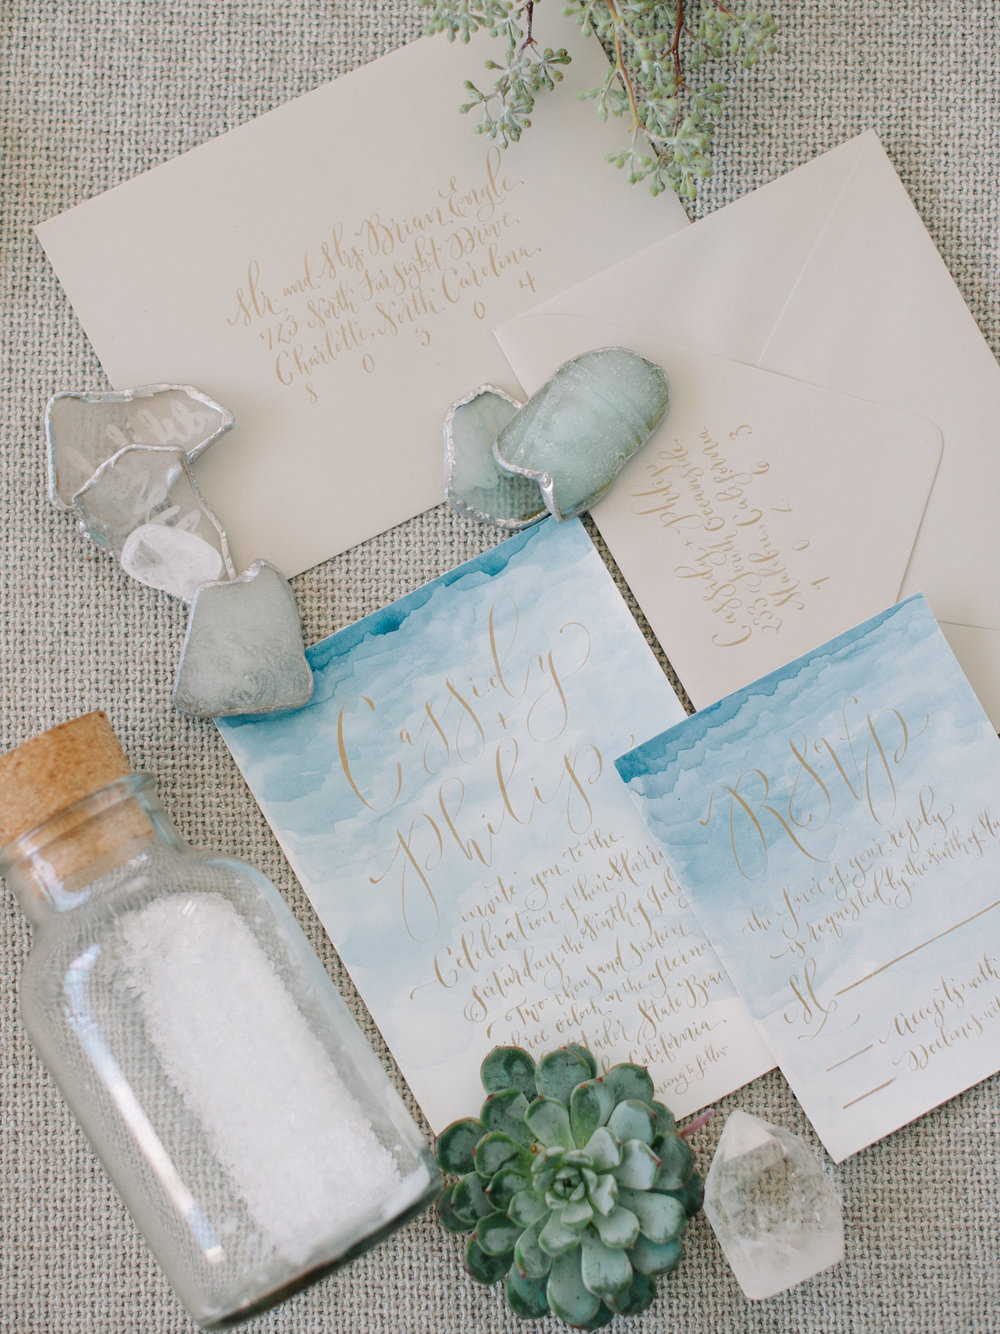 What goes in a wedding invitation suite brush nib studio hand an invitation suite includes some standard pieces but also allows for customization and creativity depending on the size theme style and formality and filmwisefo